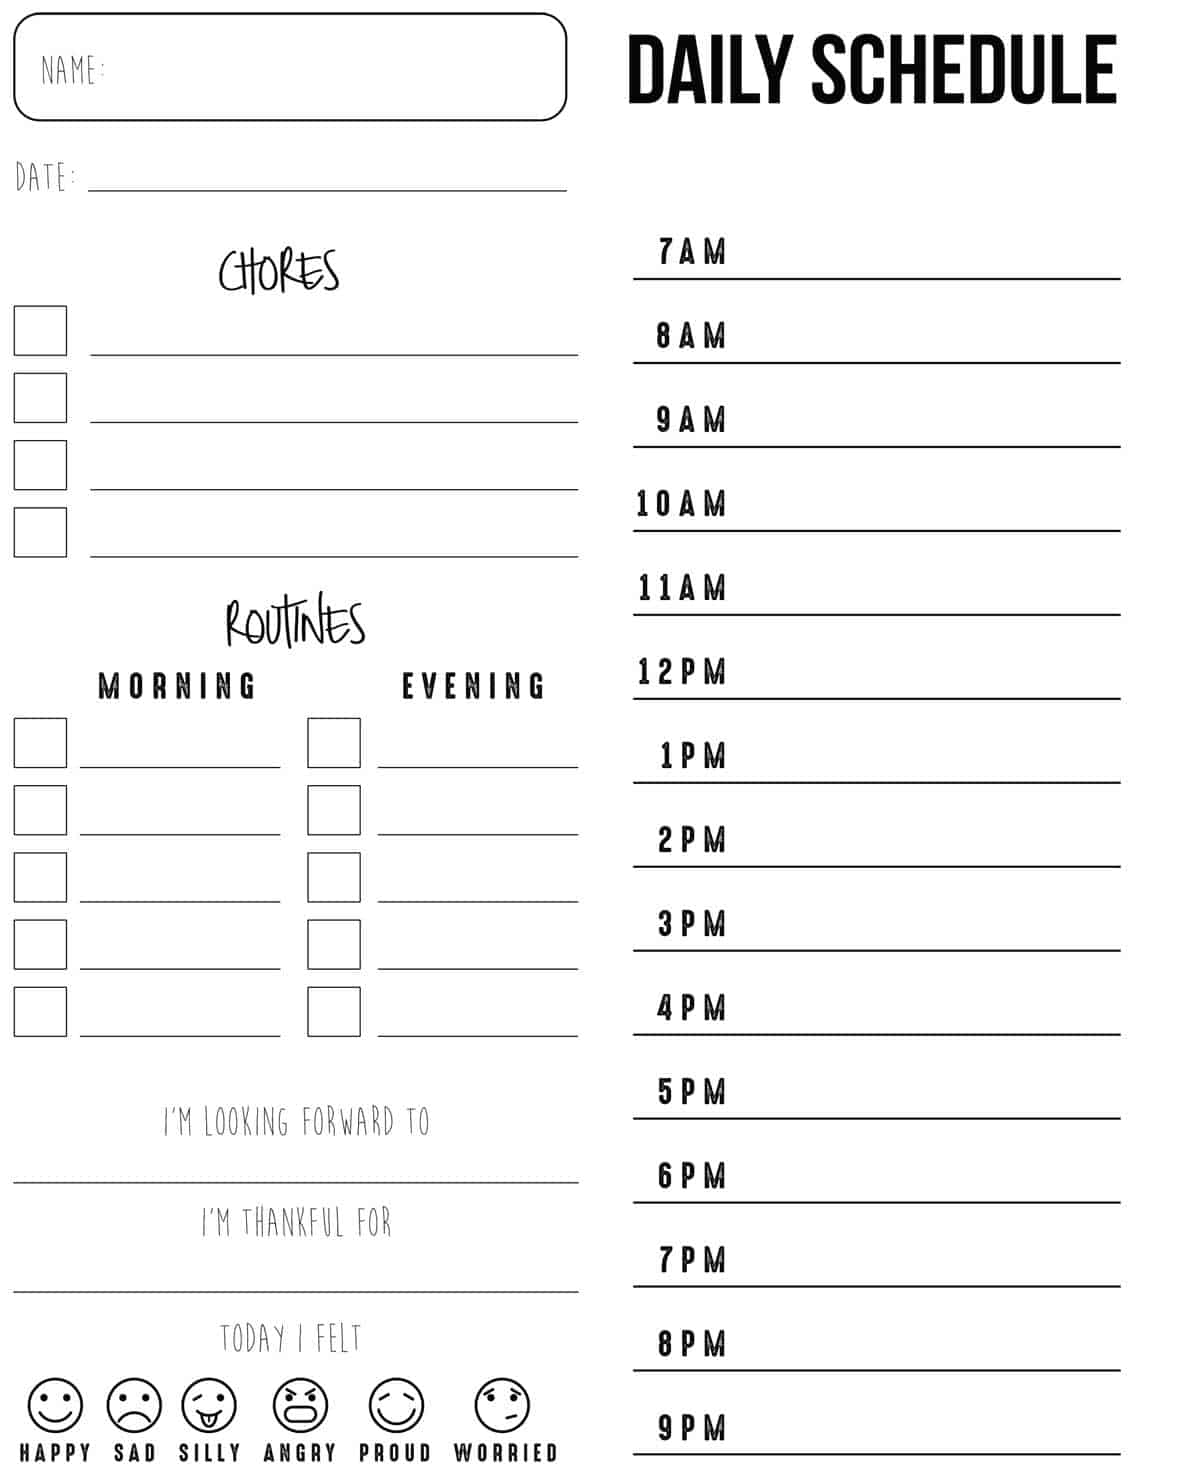 printed daily schedule